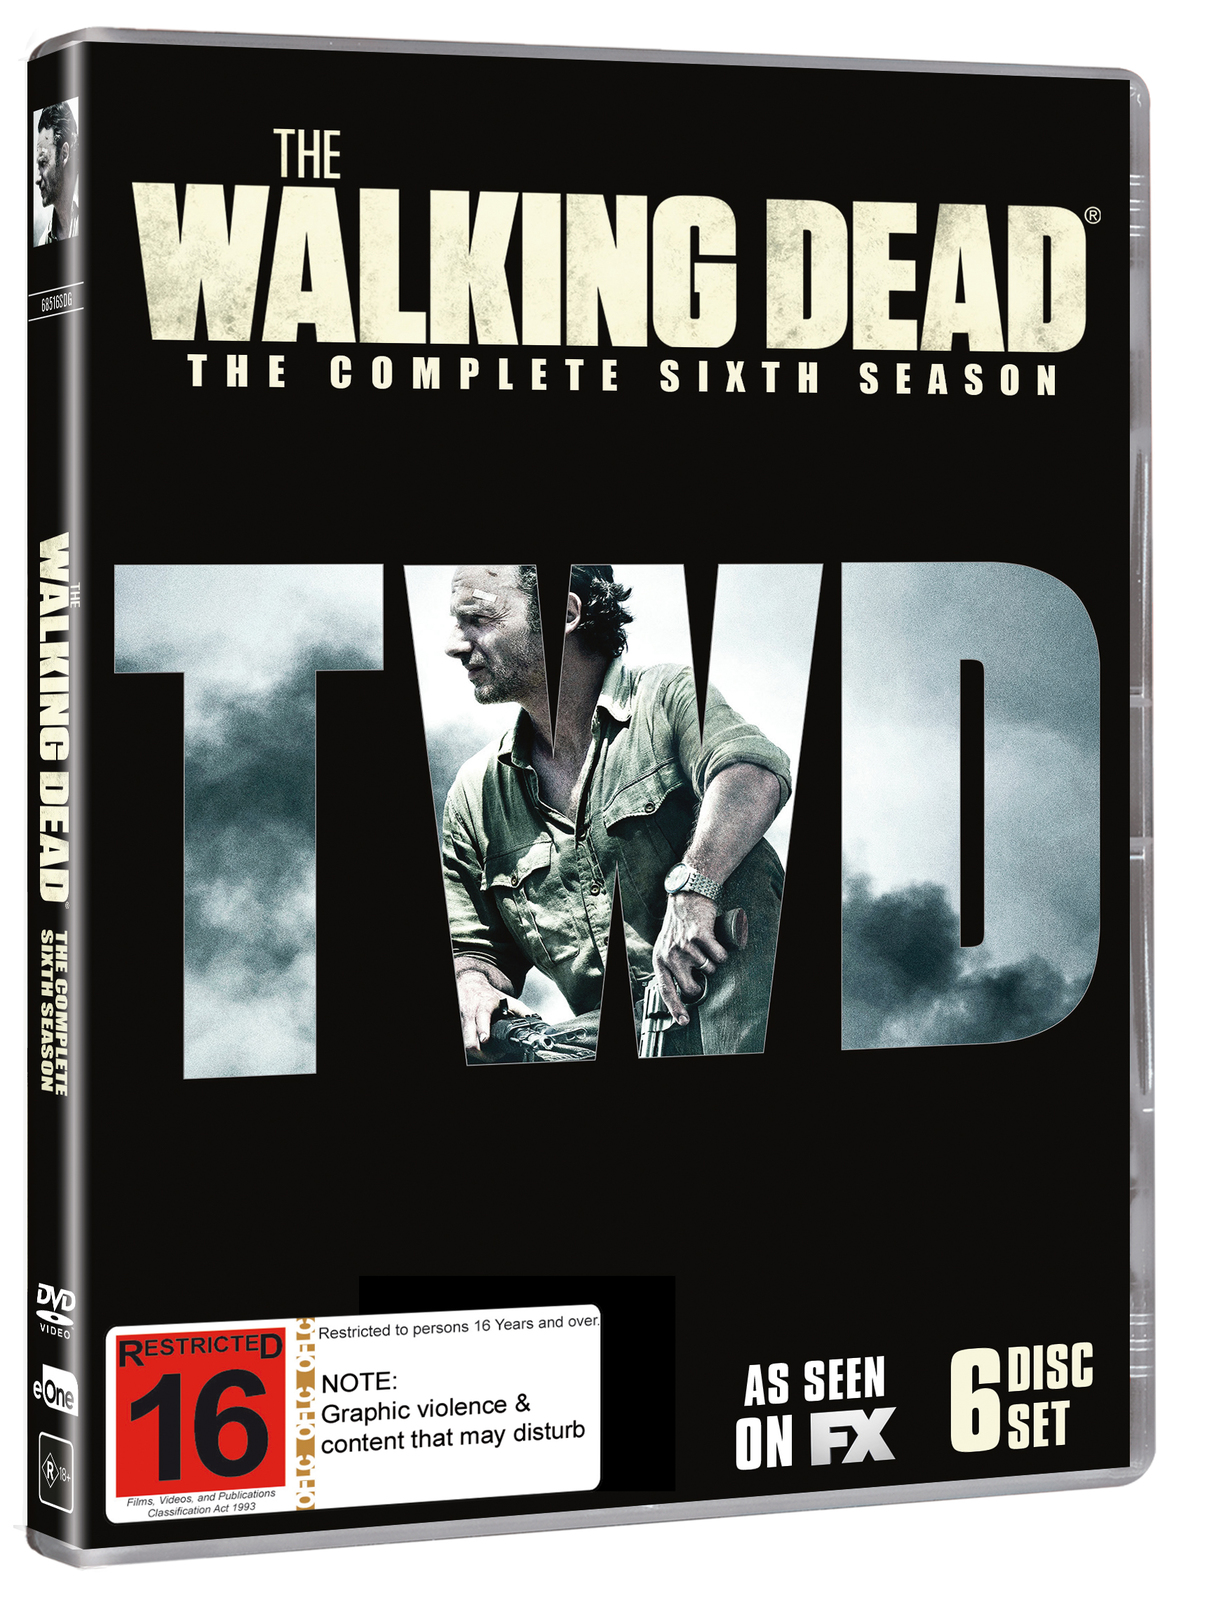 The Walking Dead - The Complete Sixth Season on DVD image